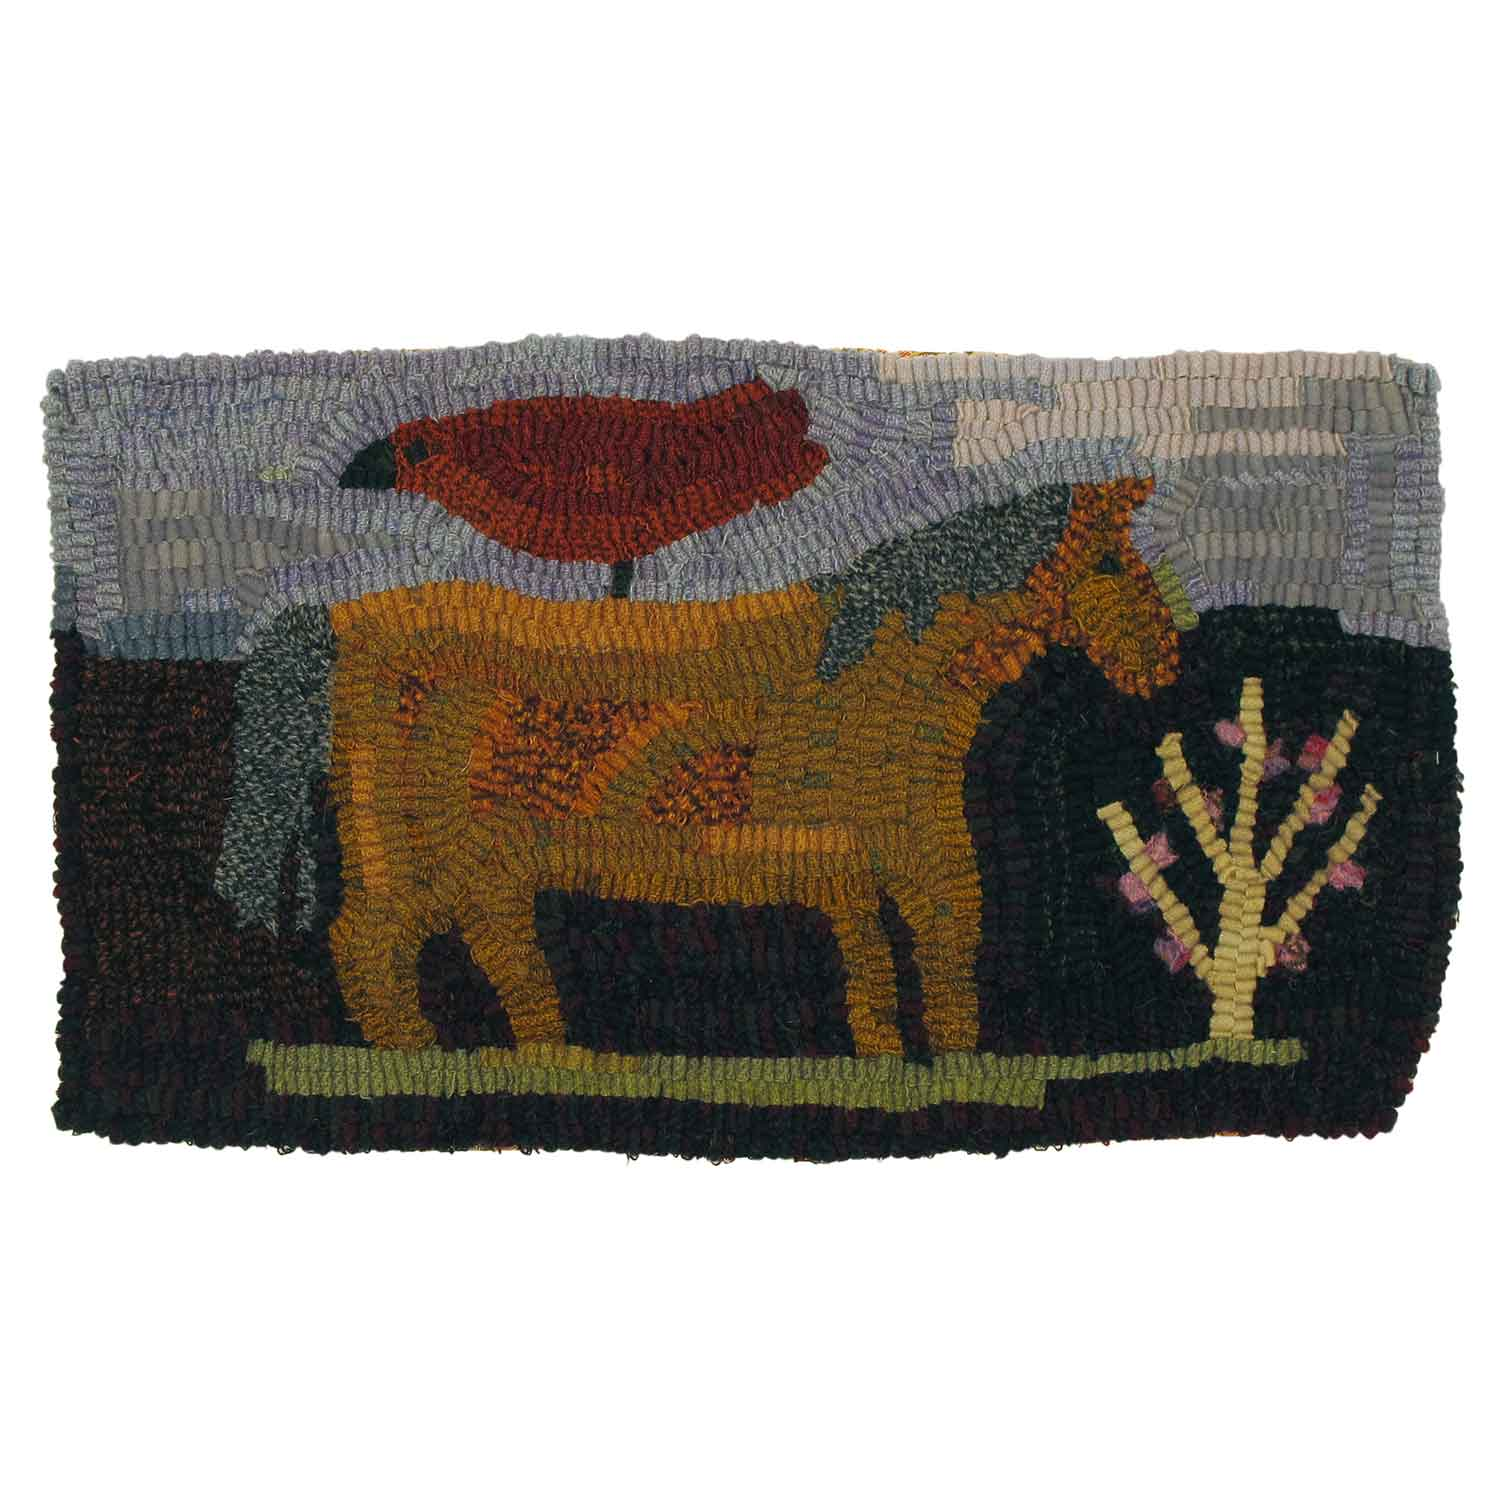 Mimi's Horse Hooked Rug